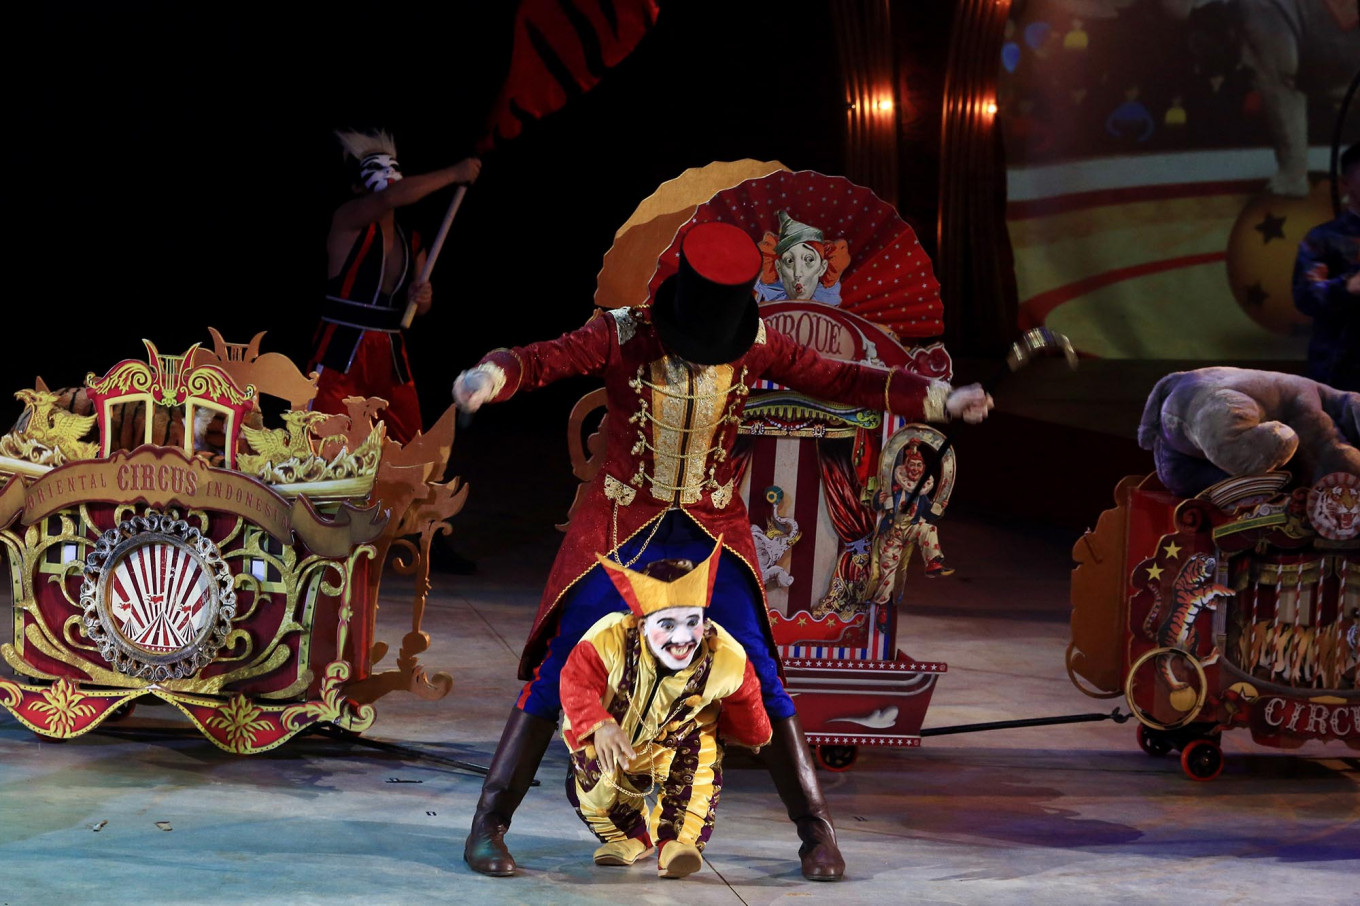 Laughing matter: Two clowns entertain the audience during The Great 50 Show performance by Oriental Circus Indonesia. JP/Dhoni Setiawan